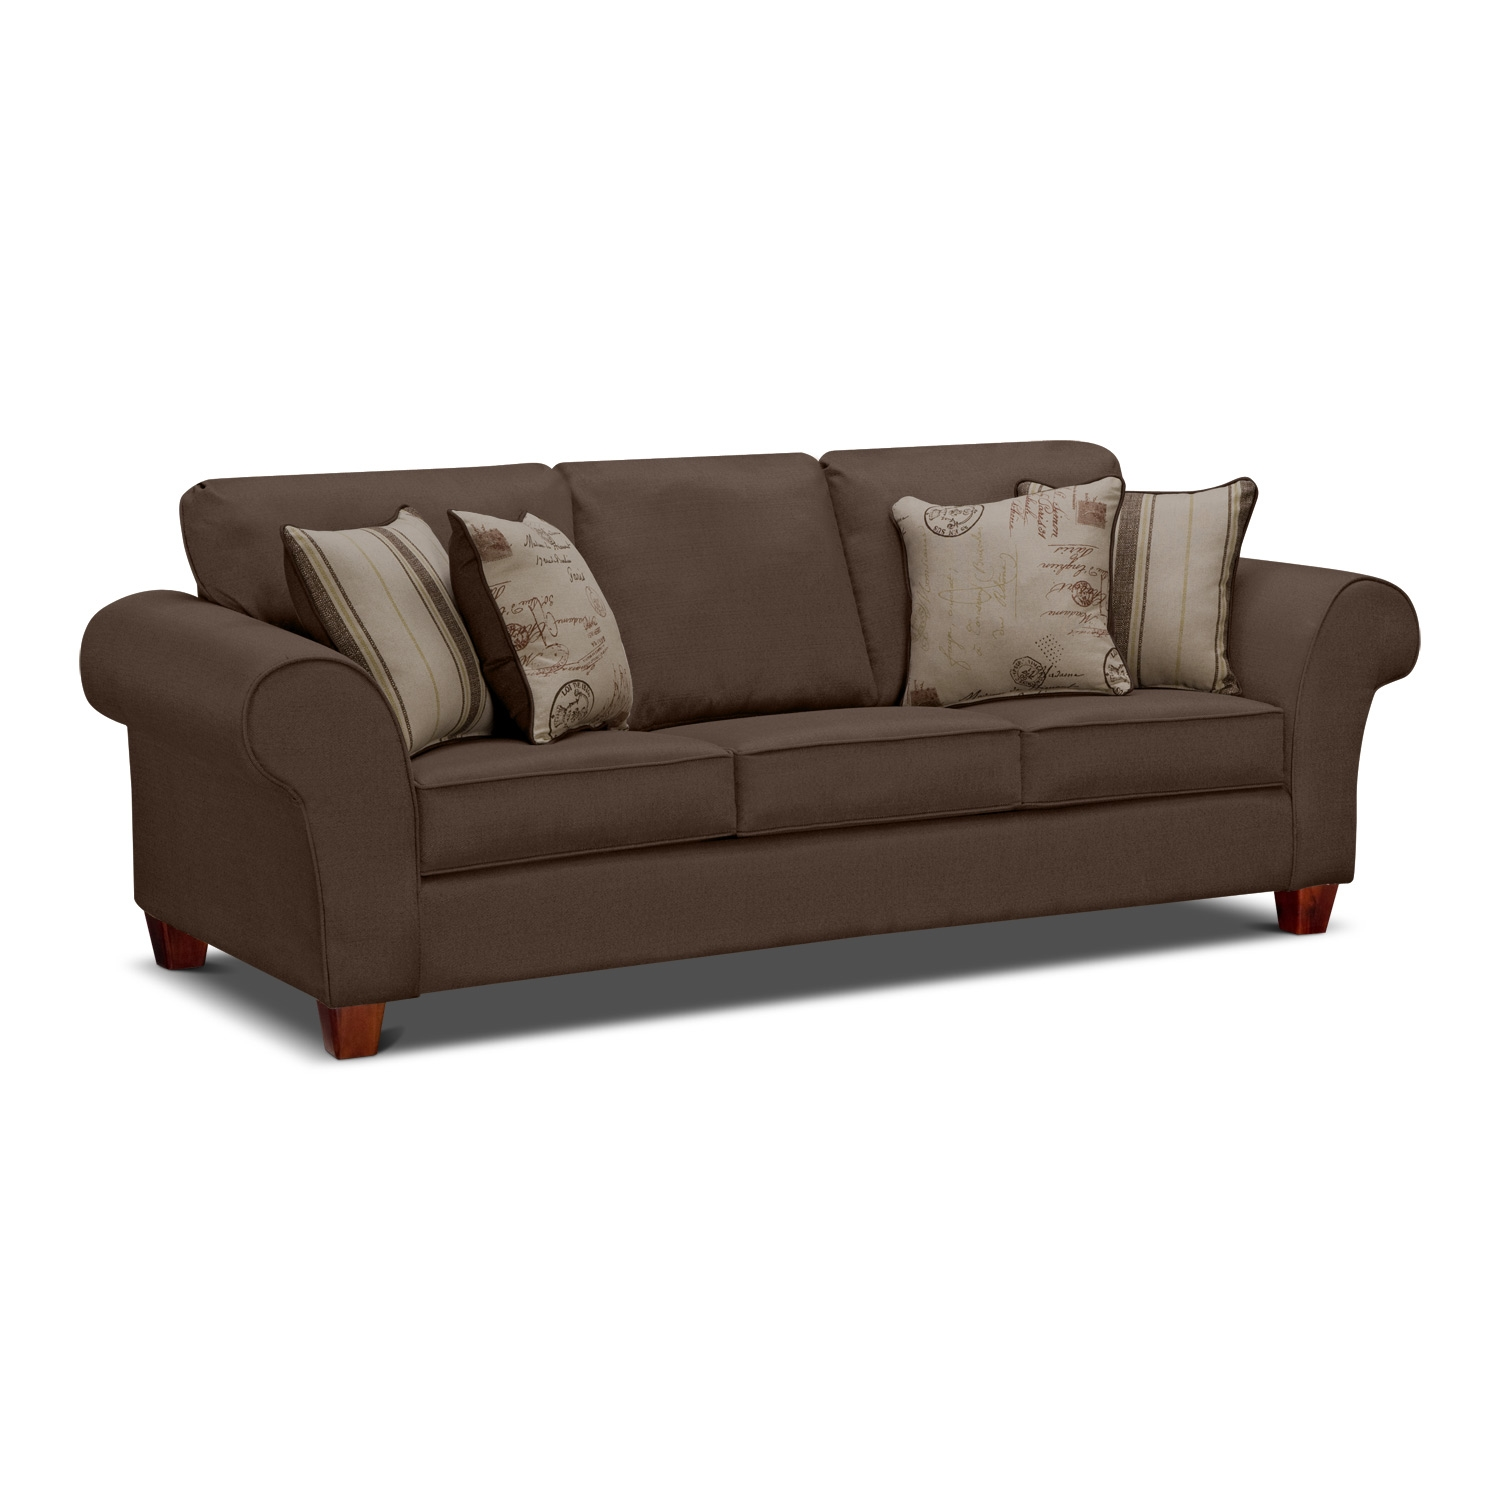 Sofas on sale ikea couch sofa ideas interior design for Sofa couch for sale